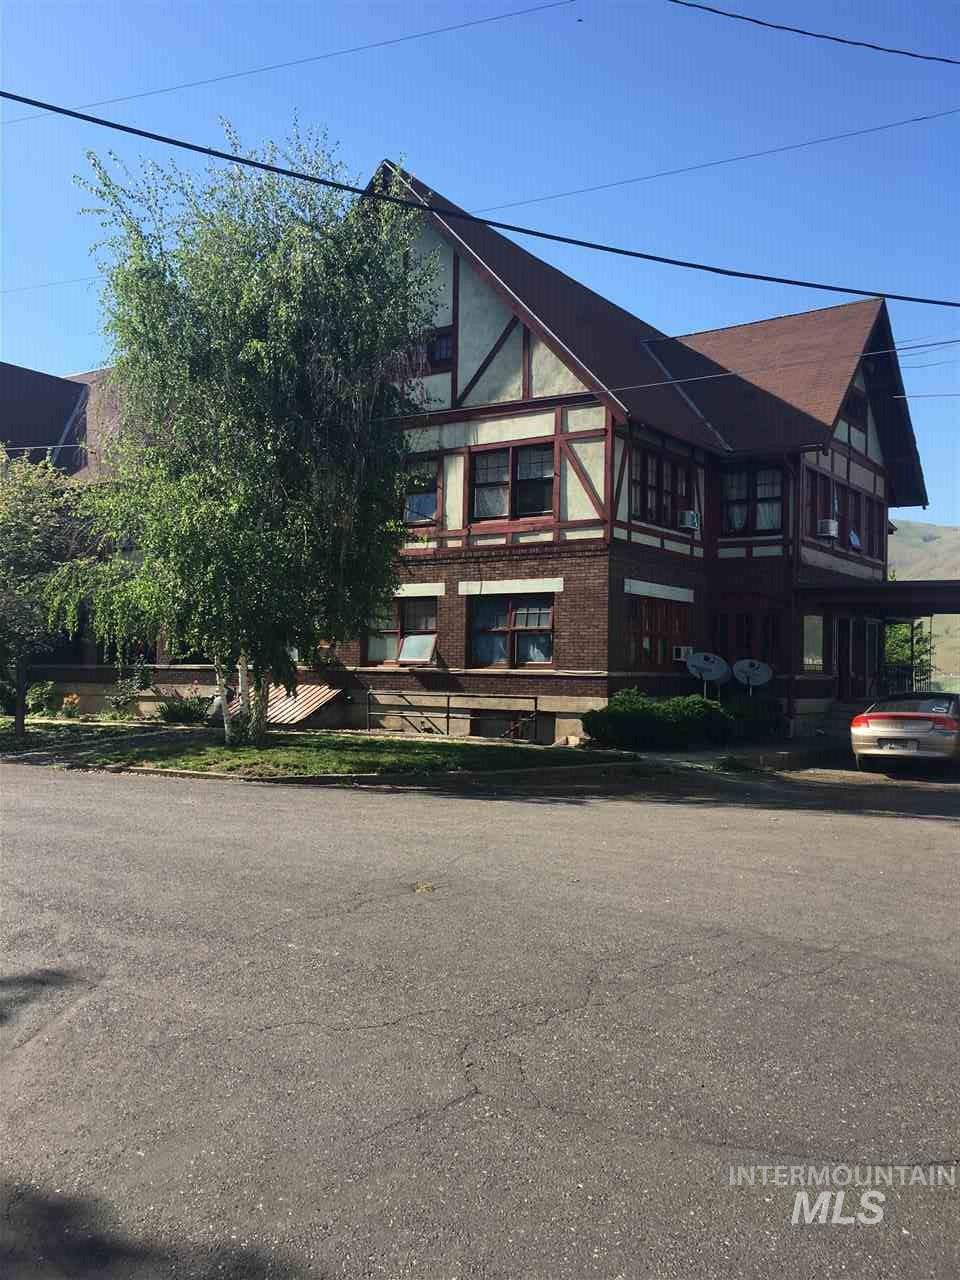 Multi-Family Home for Sale at 615 3rd. Avenue Lewiston, Idaho 83501